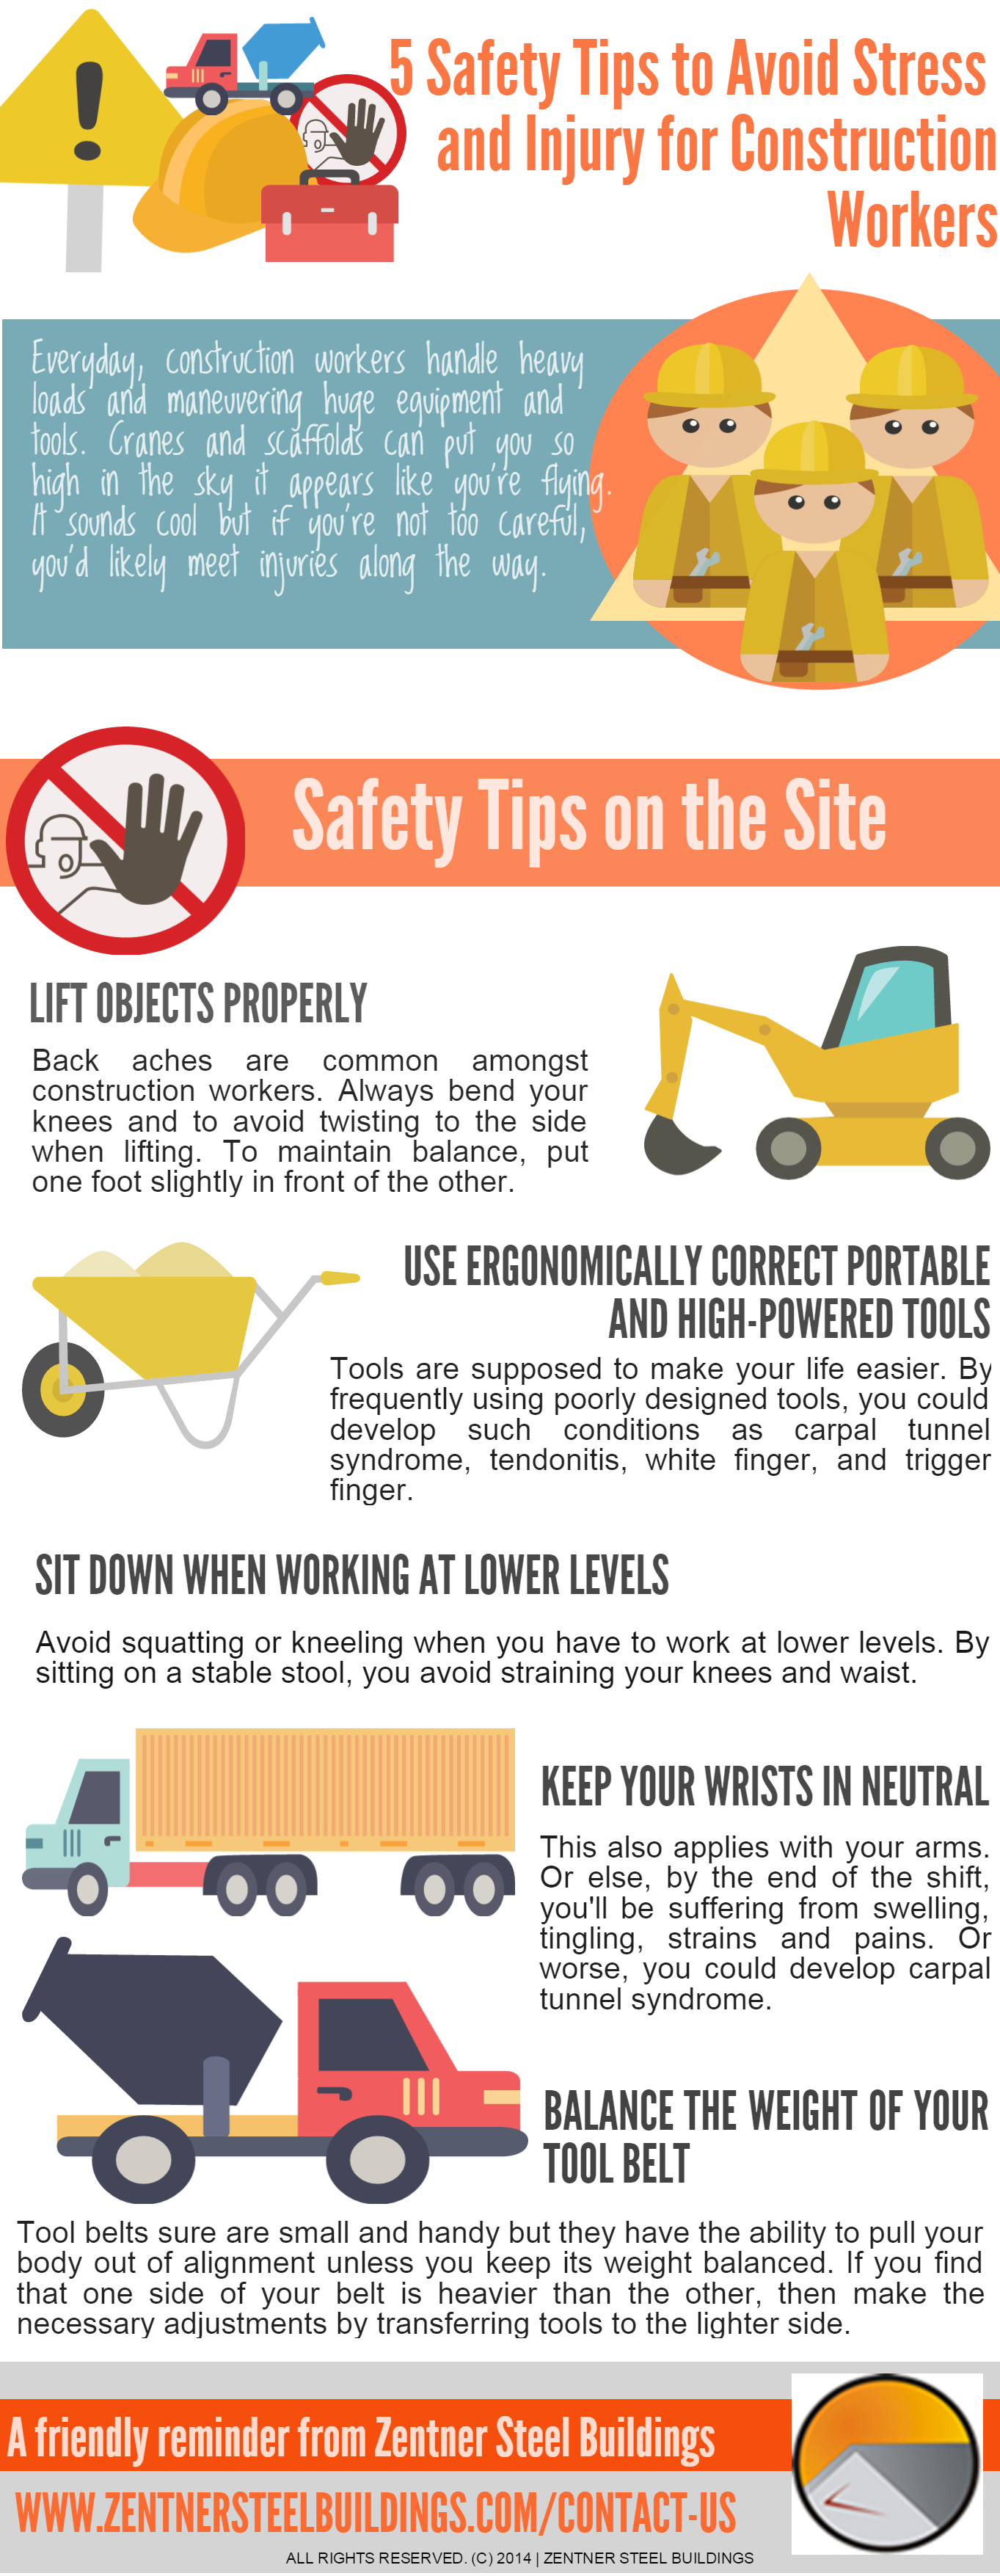 Top tips to staying stress free in the workplace infographic - Infographic 5 Tips To Avoid Stress And Injury For Construction Workers